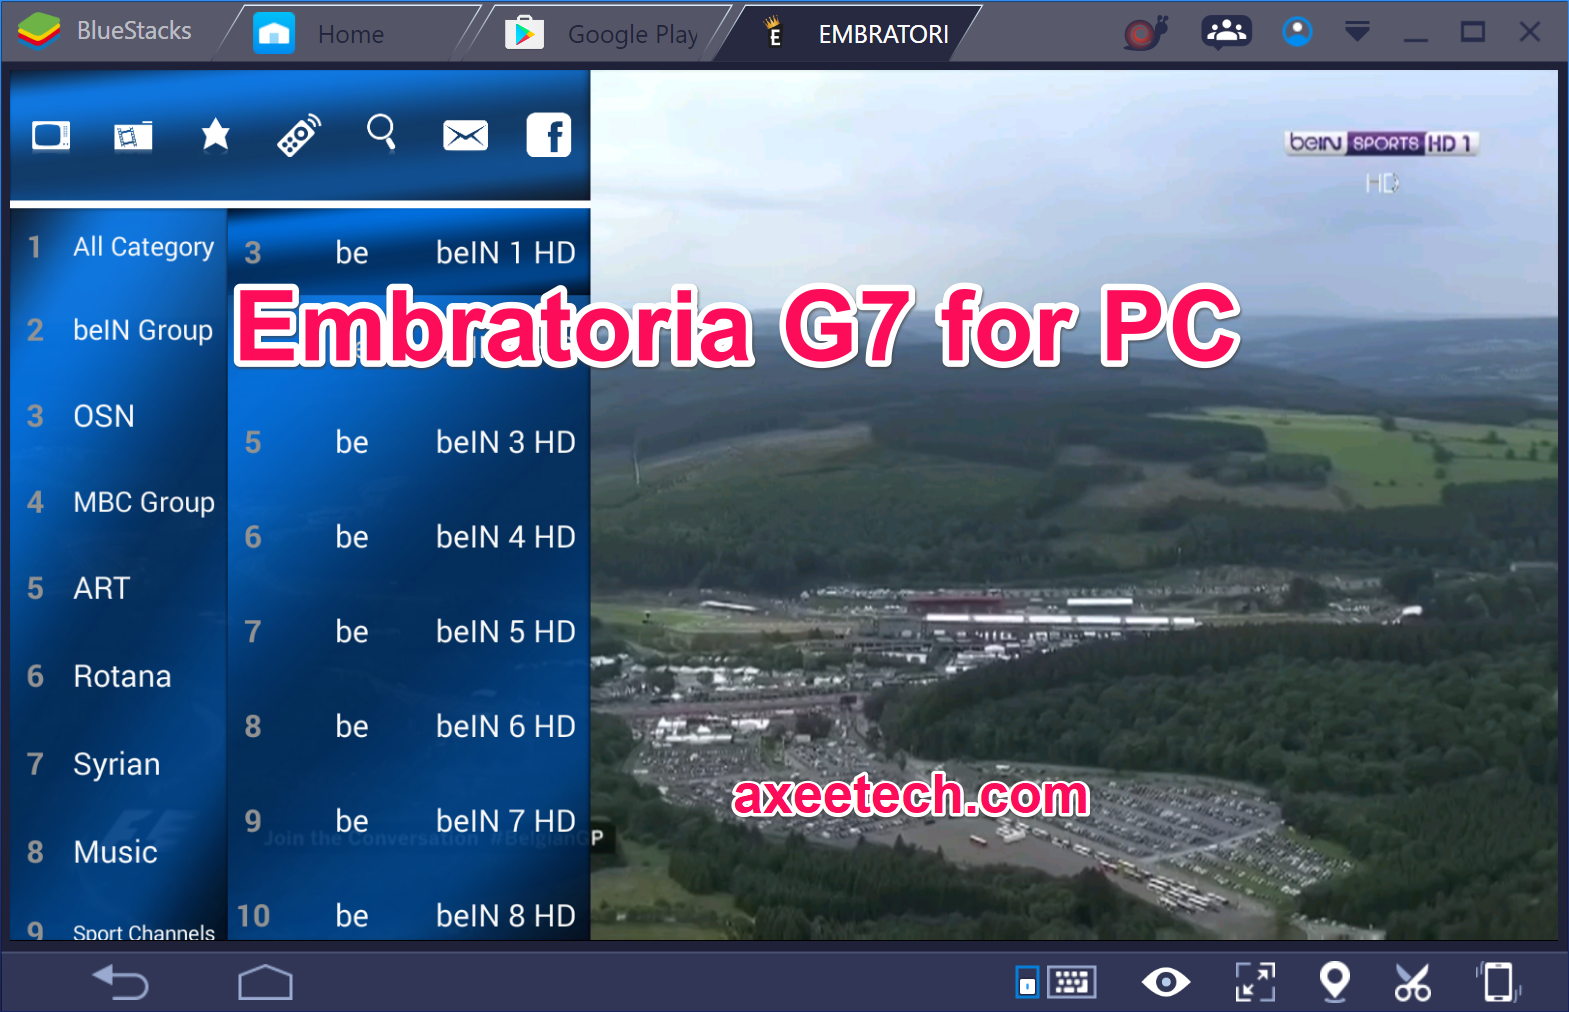 embratoria g7 sur pc